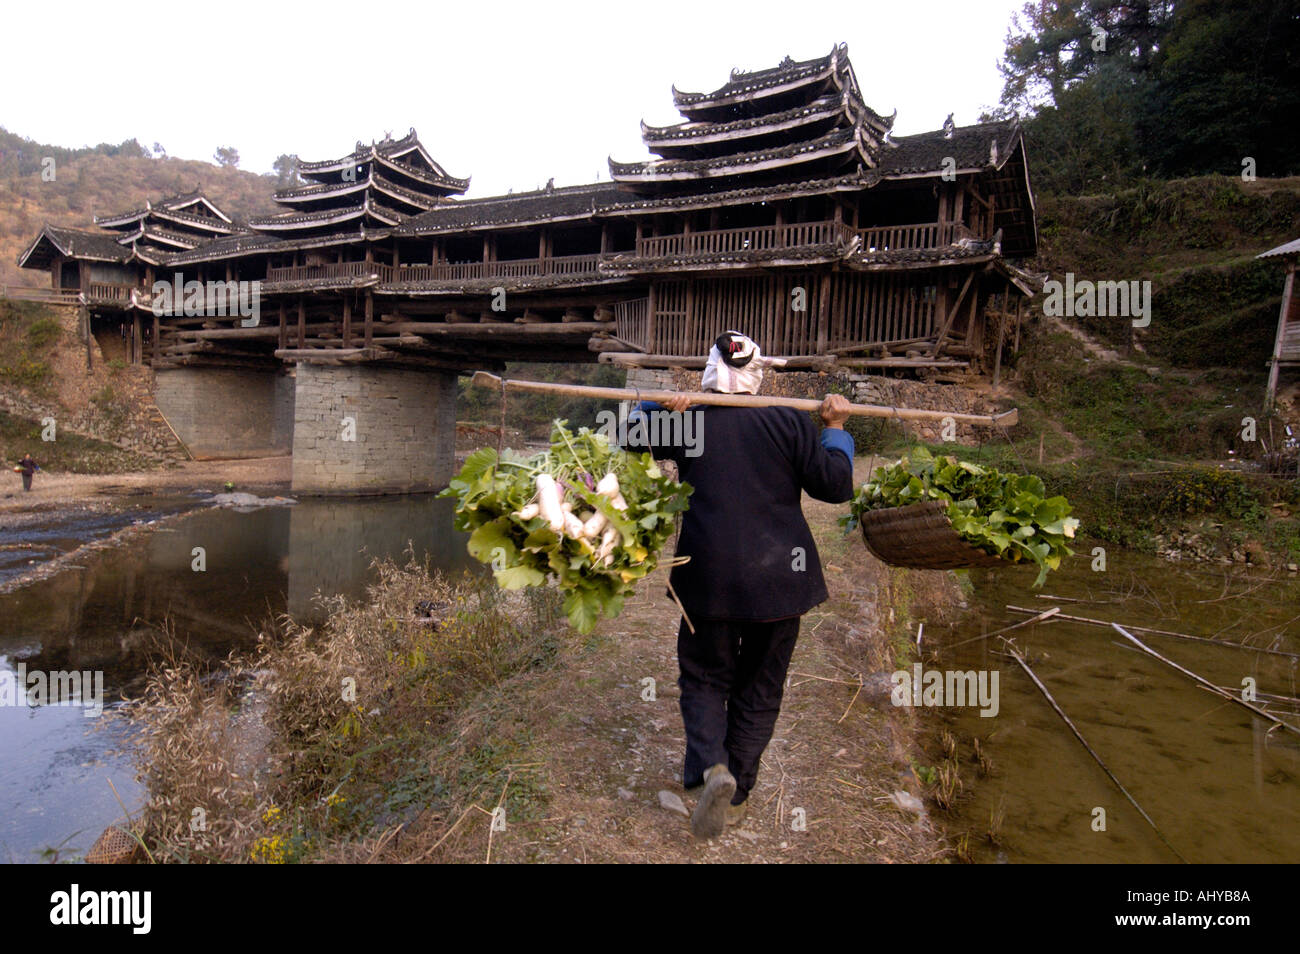 A Dong minority woman carries vegetables towards a wind and rain bridge in Sanjiang Guangxi Province in China 2005 Stock Photo